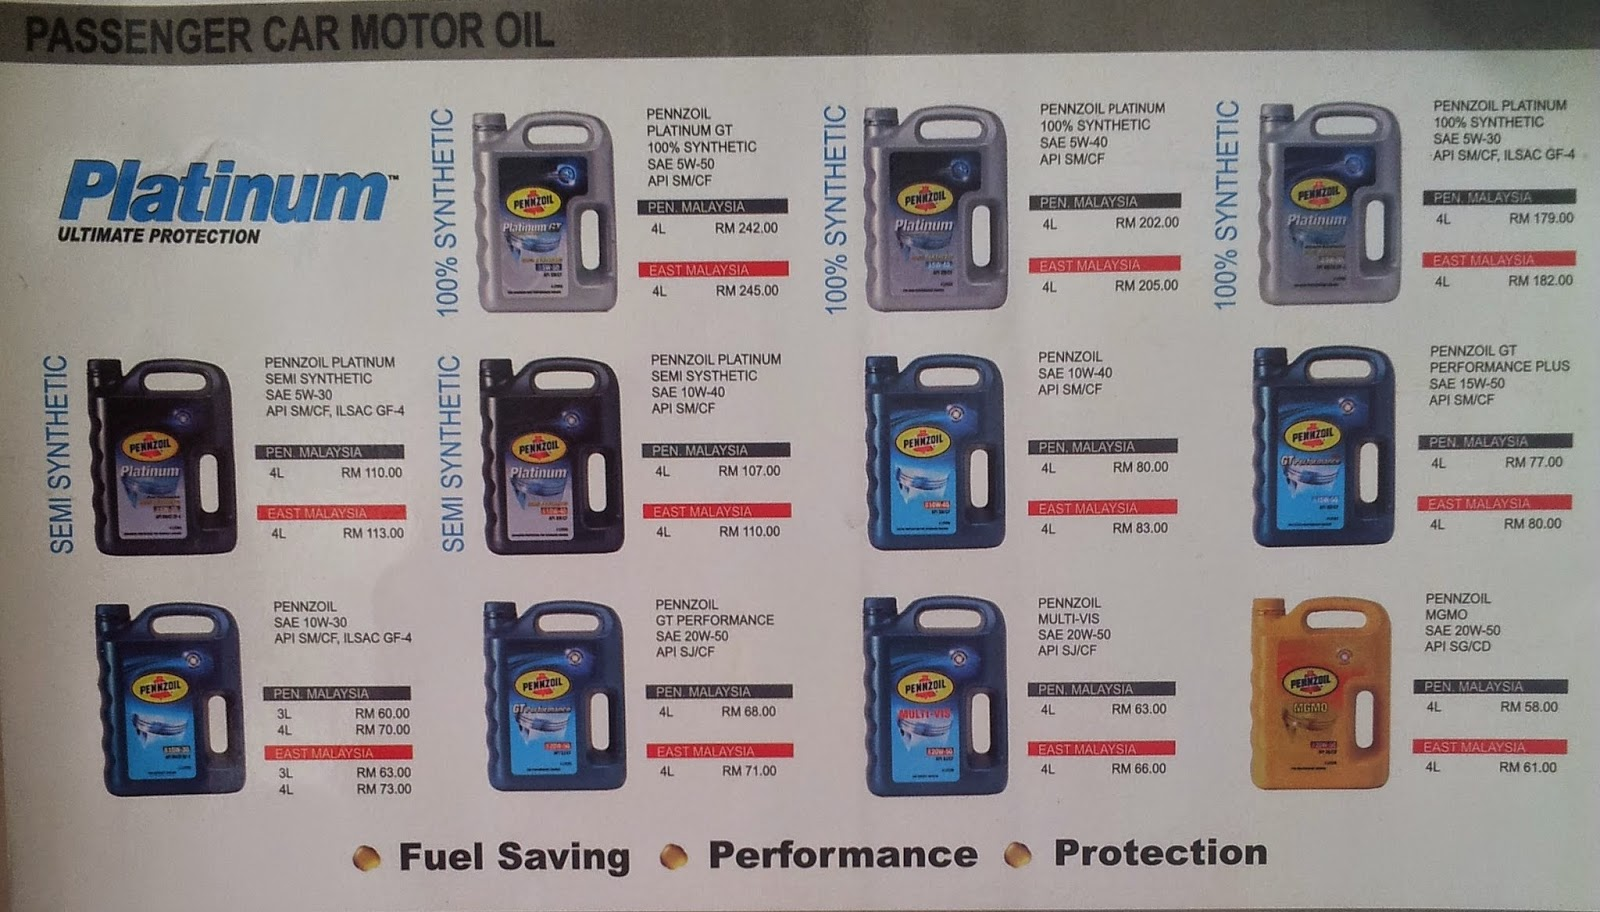 Best engine oil pennzoil passenger car engine oil Best price on motor oil